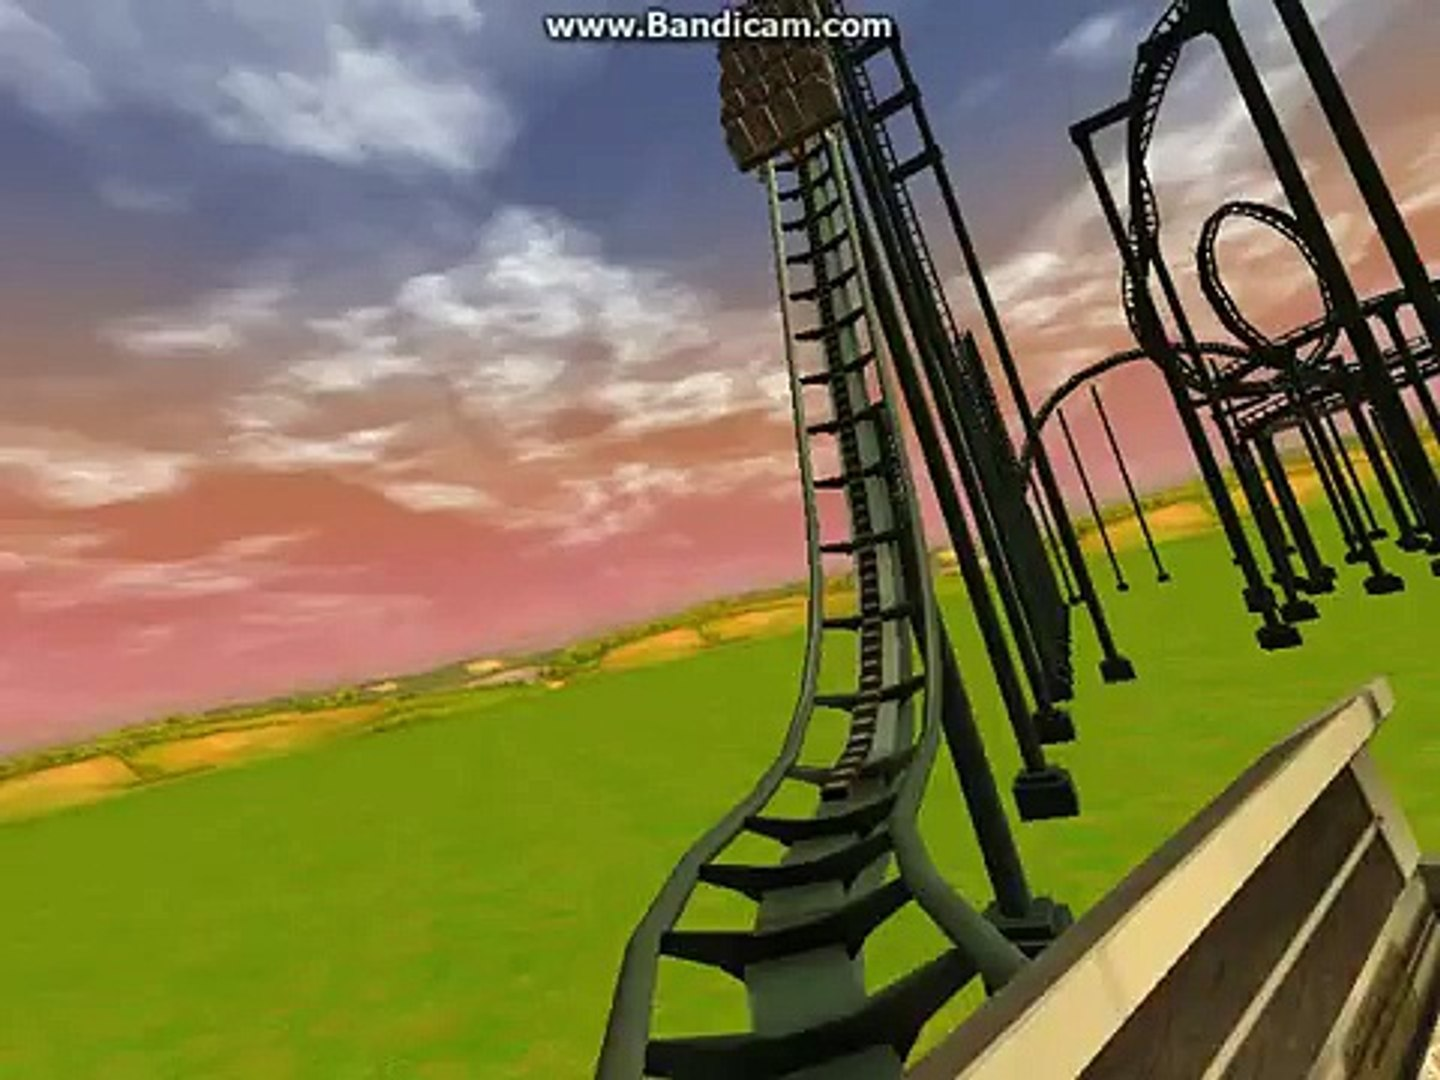 Rush EuroFighter Rollercoaster in Rct3